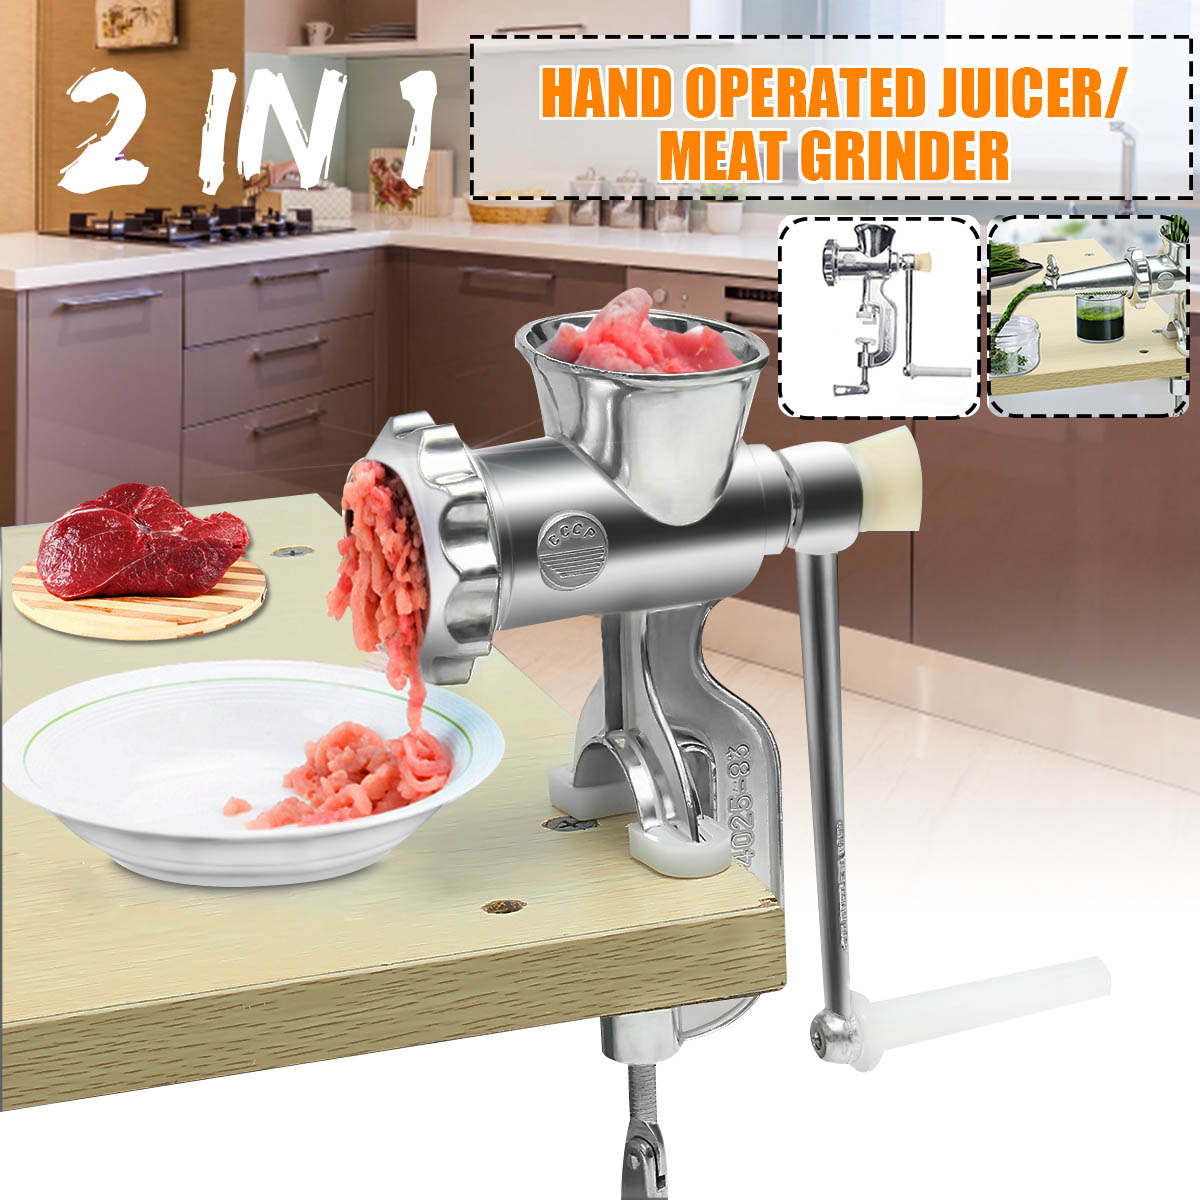 2 In 1 Hand Operated Juicer Food Meat Grinder Household Manual Juice Squeezer Press Extractor Meat Fruit Vegetable Wheatgrass2 In 1 Hand Operated Juicer Food Meat Grinder Household Manual Juice Squeezer Press Extractor Meat Fruit Vegetable Wheatgrass